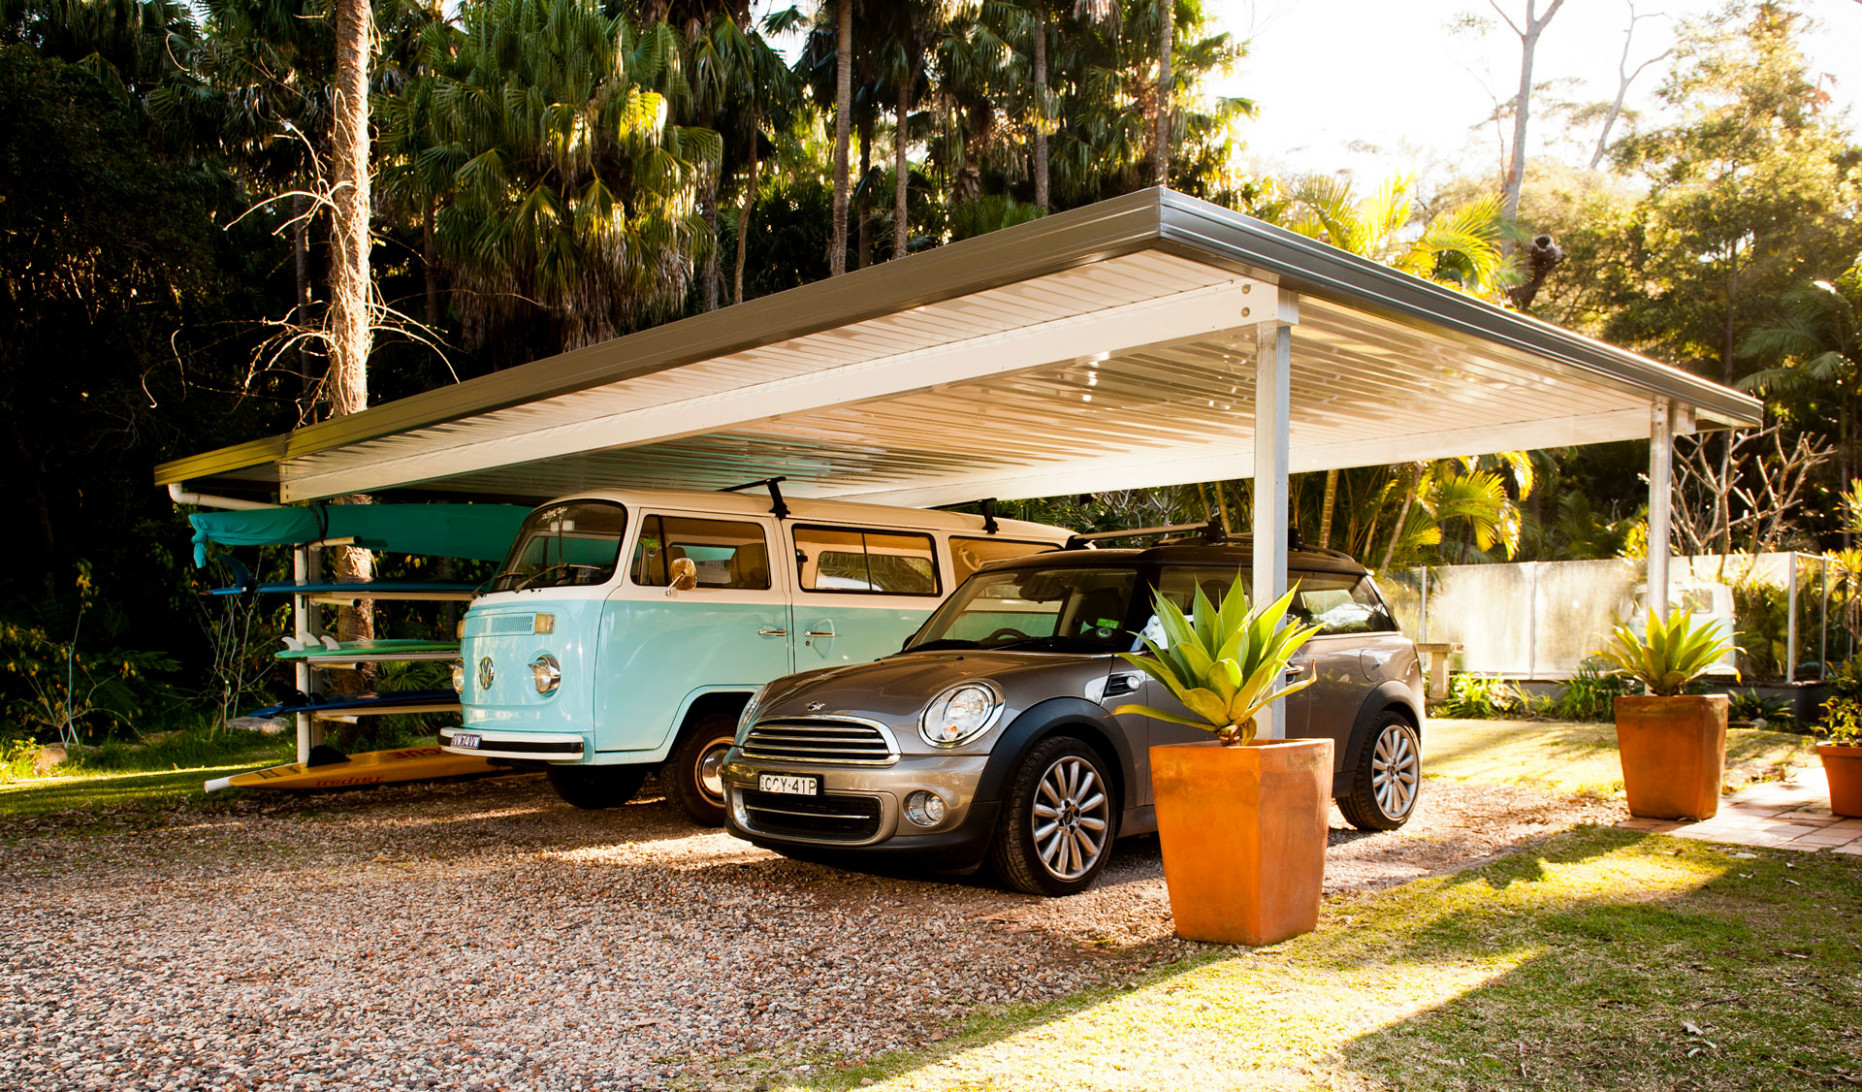 Home Carport Design Installation Australia Wide Carport Carports Ideas Australia.jpg